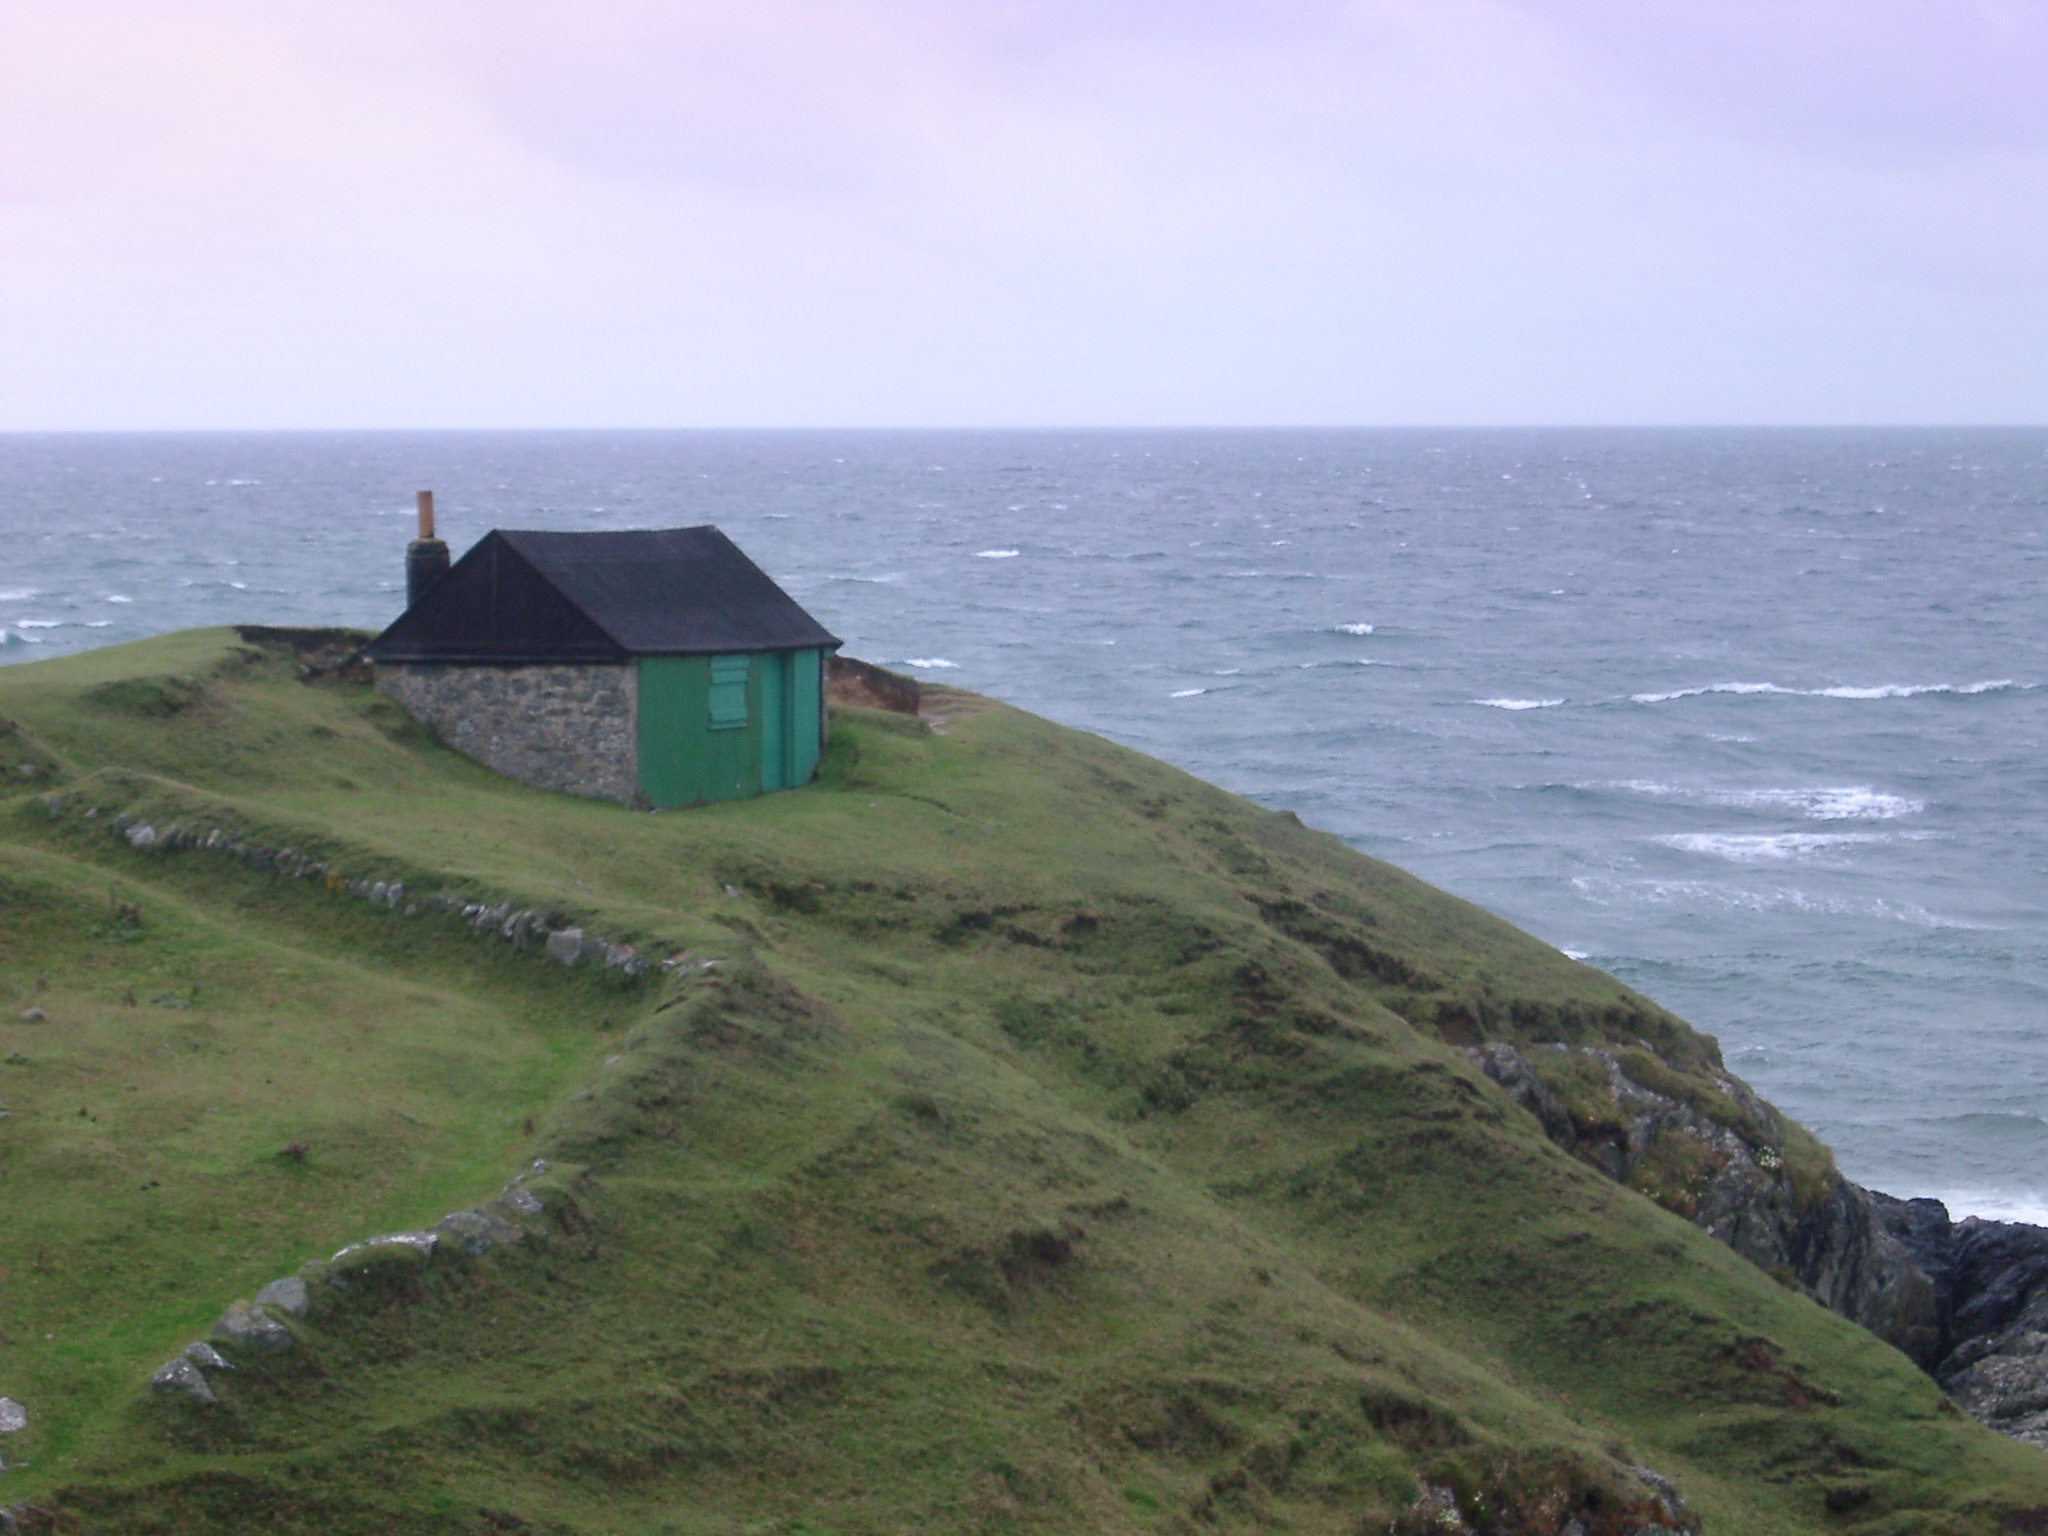 Stormy coastal landscape with the roof of a small hut or cottage on a lush promontory with pastures overlooking a wild ocean with breaking waves